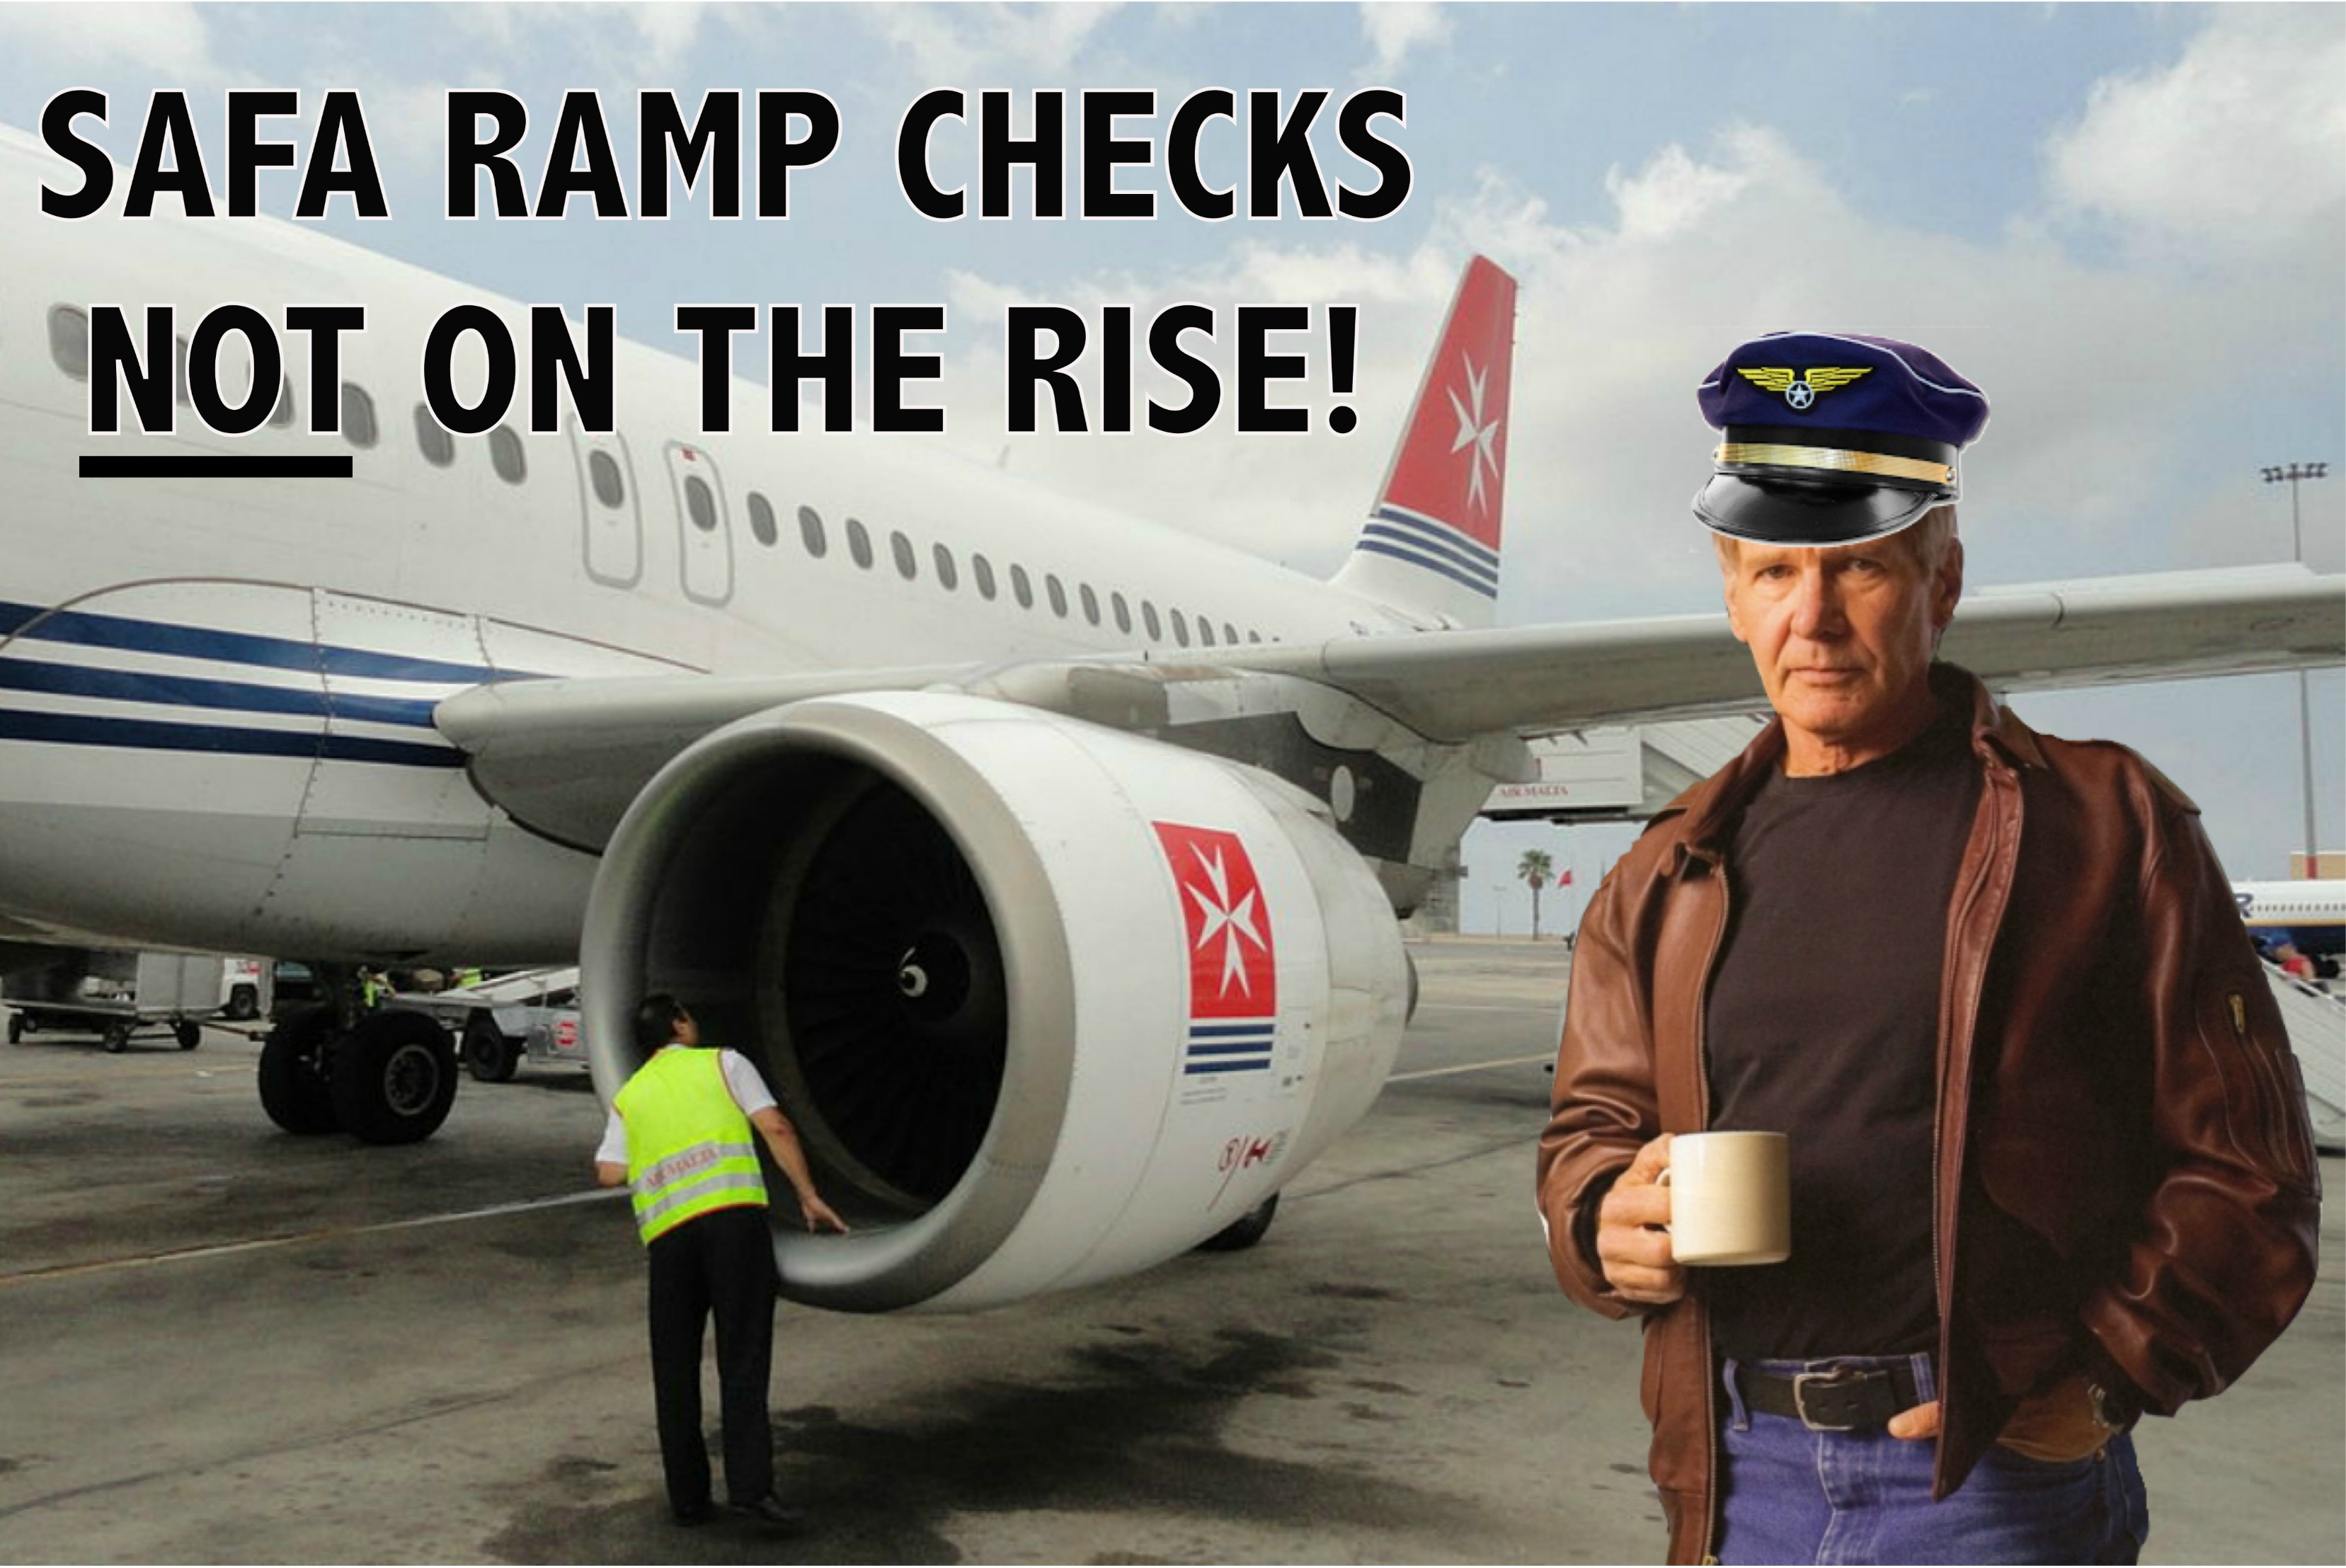 EU SAFA ramp checks NOT on the rise – but are you ready for one?